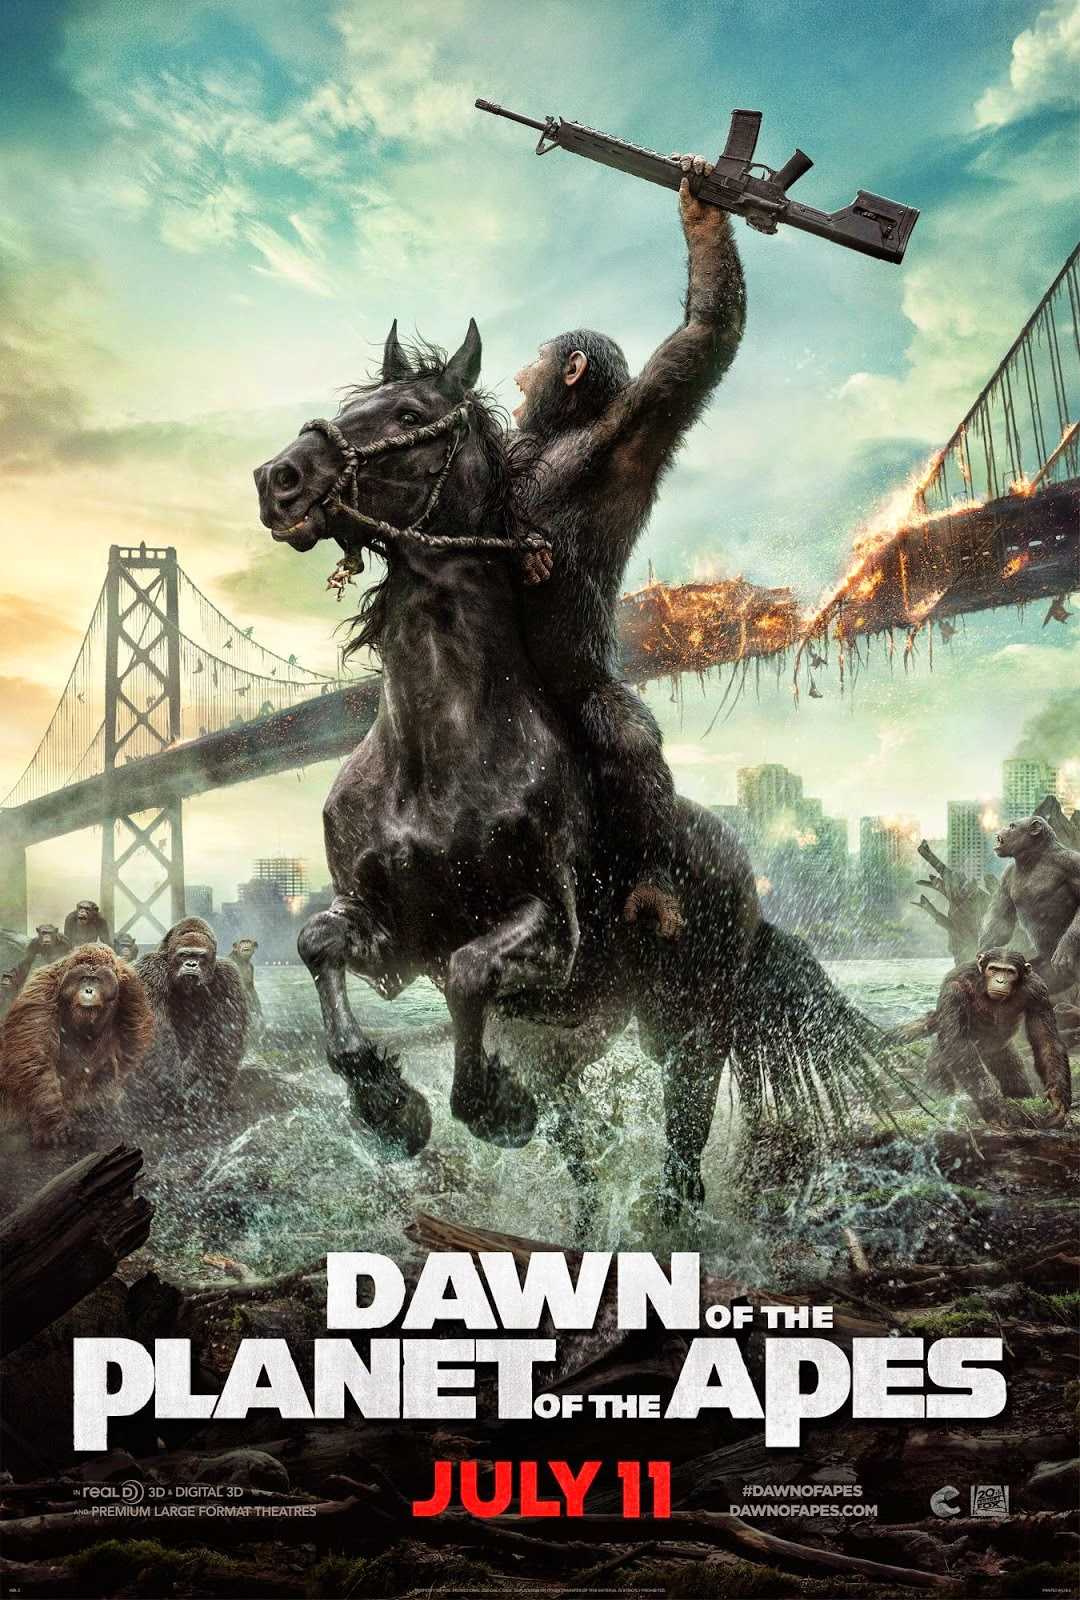 DAWN OF THE PLANET OF THE APES (2014) ... NEW POSTER, NEW ... |Dawn Of The Planet Of The Apes 2014